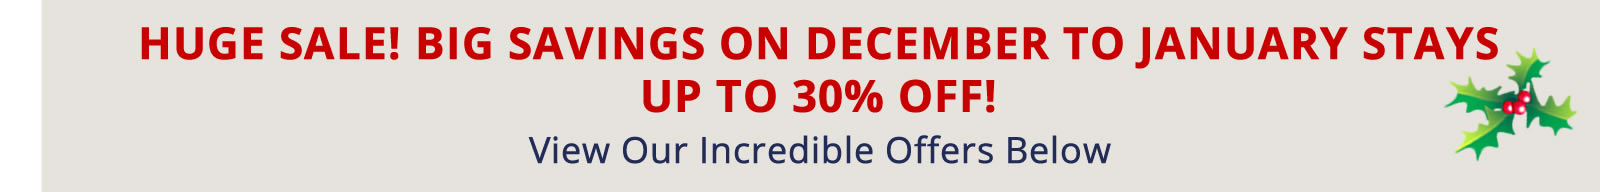 Book Now for Big Savings on December to January Stays. Up to 30% off!